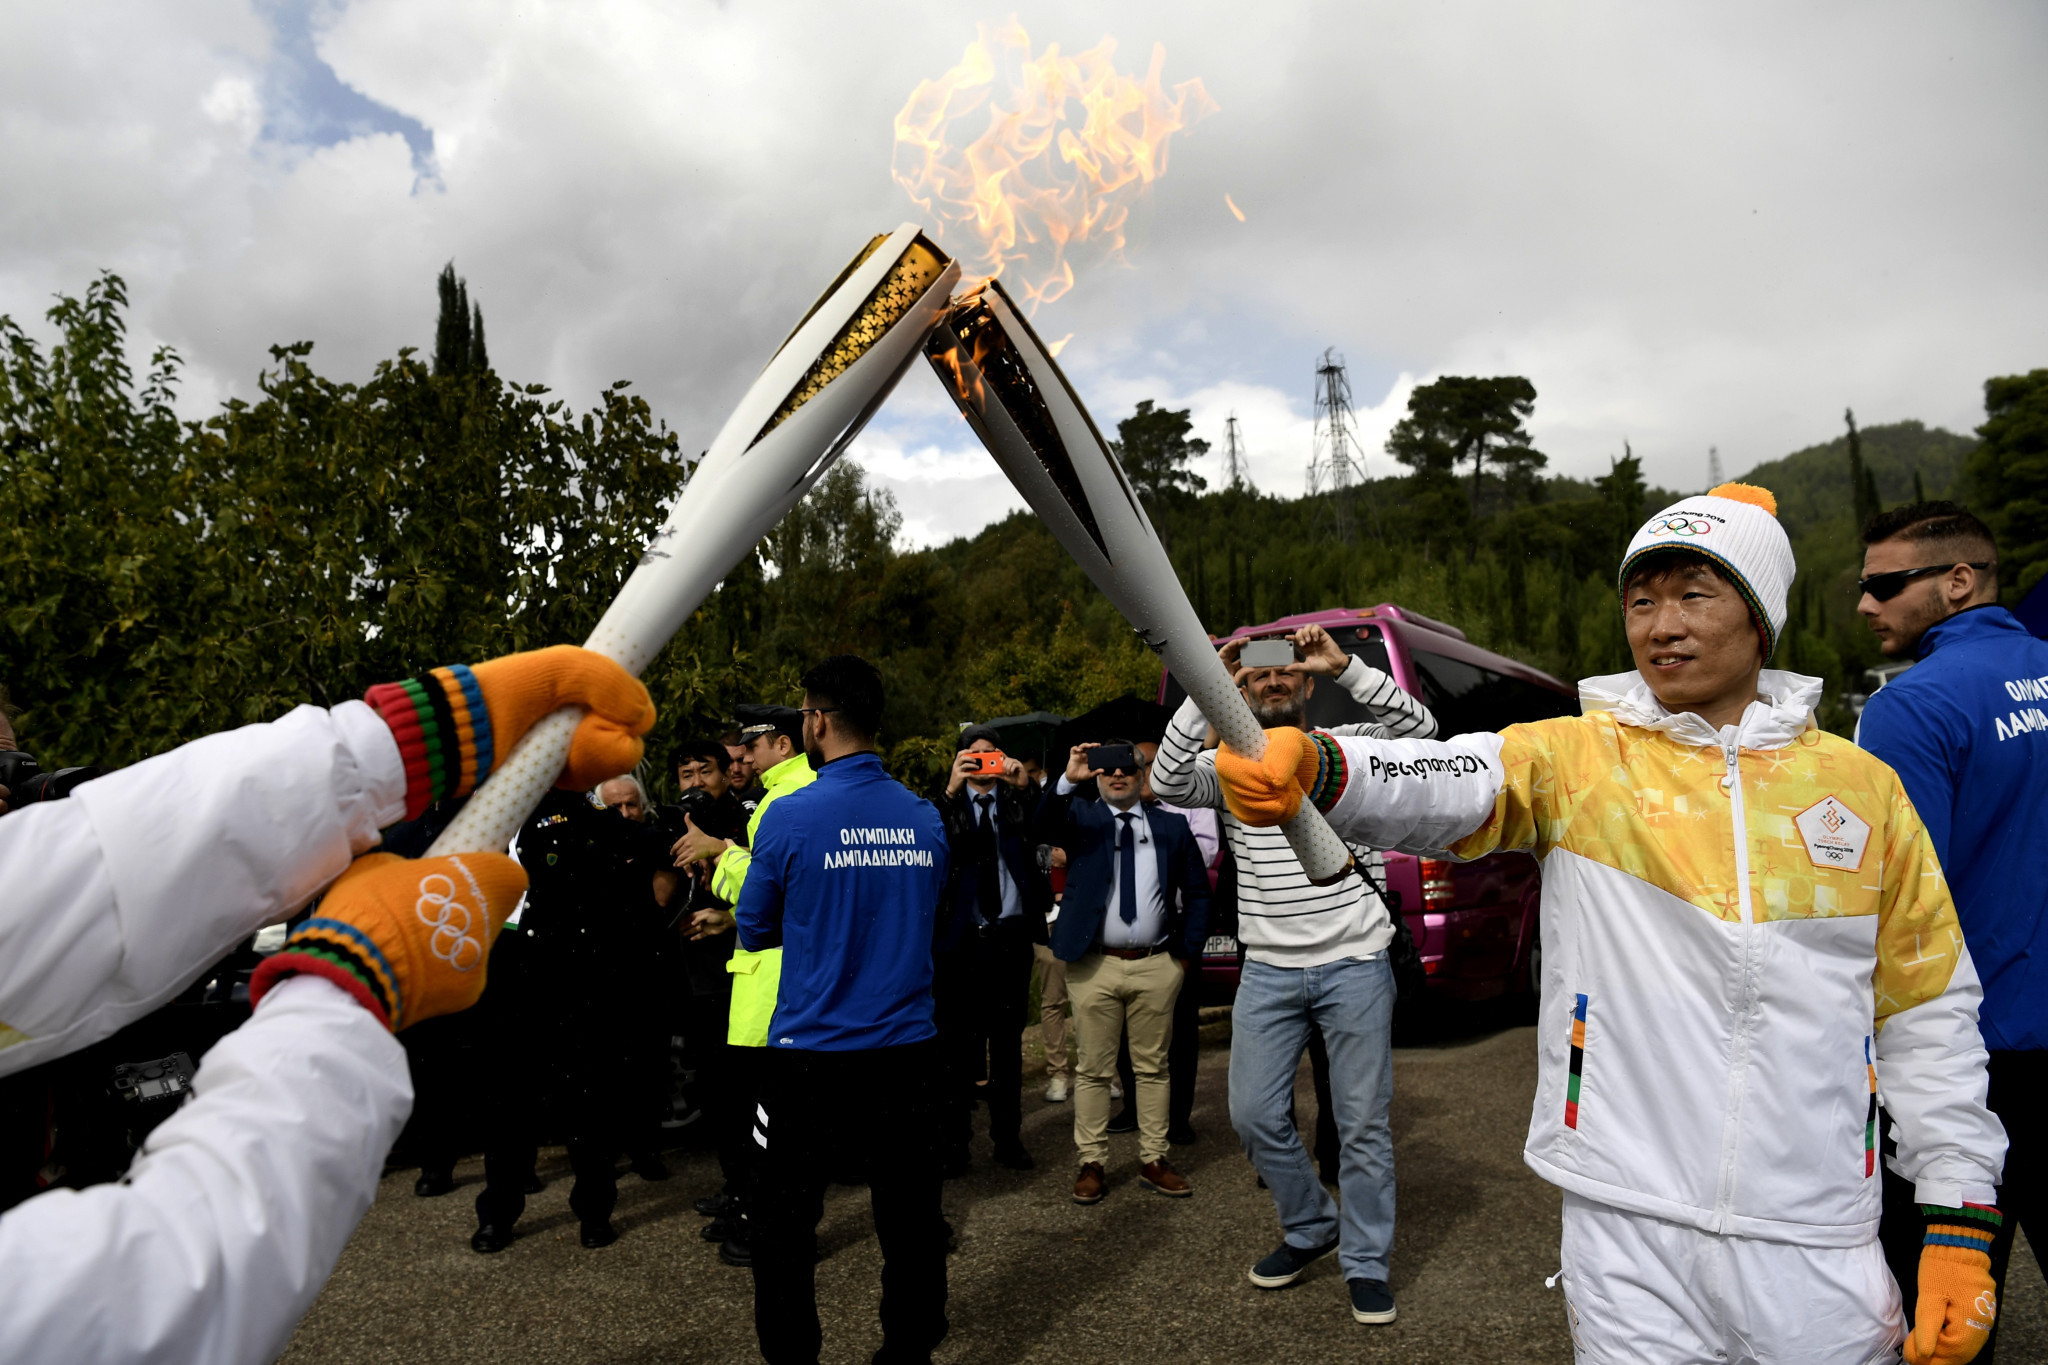 The Pyeongchang 2018 Olympic Torch lighting in Ancient Olympia was broadcast on the Channel ©Getty Images